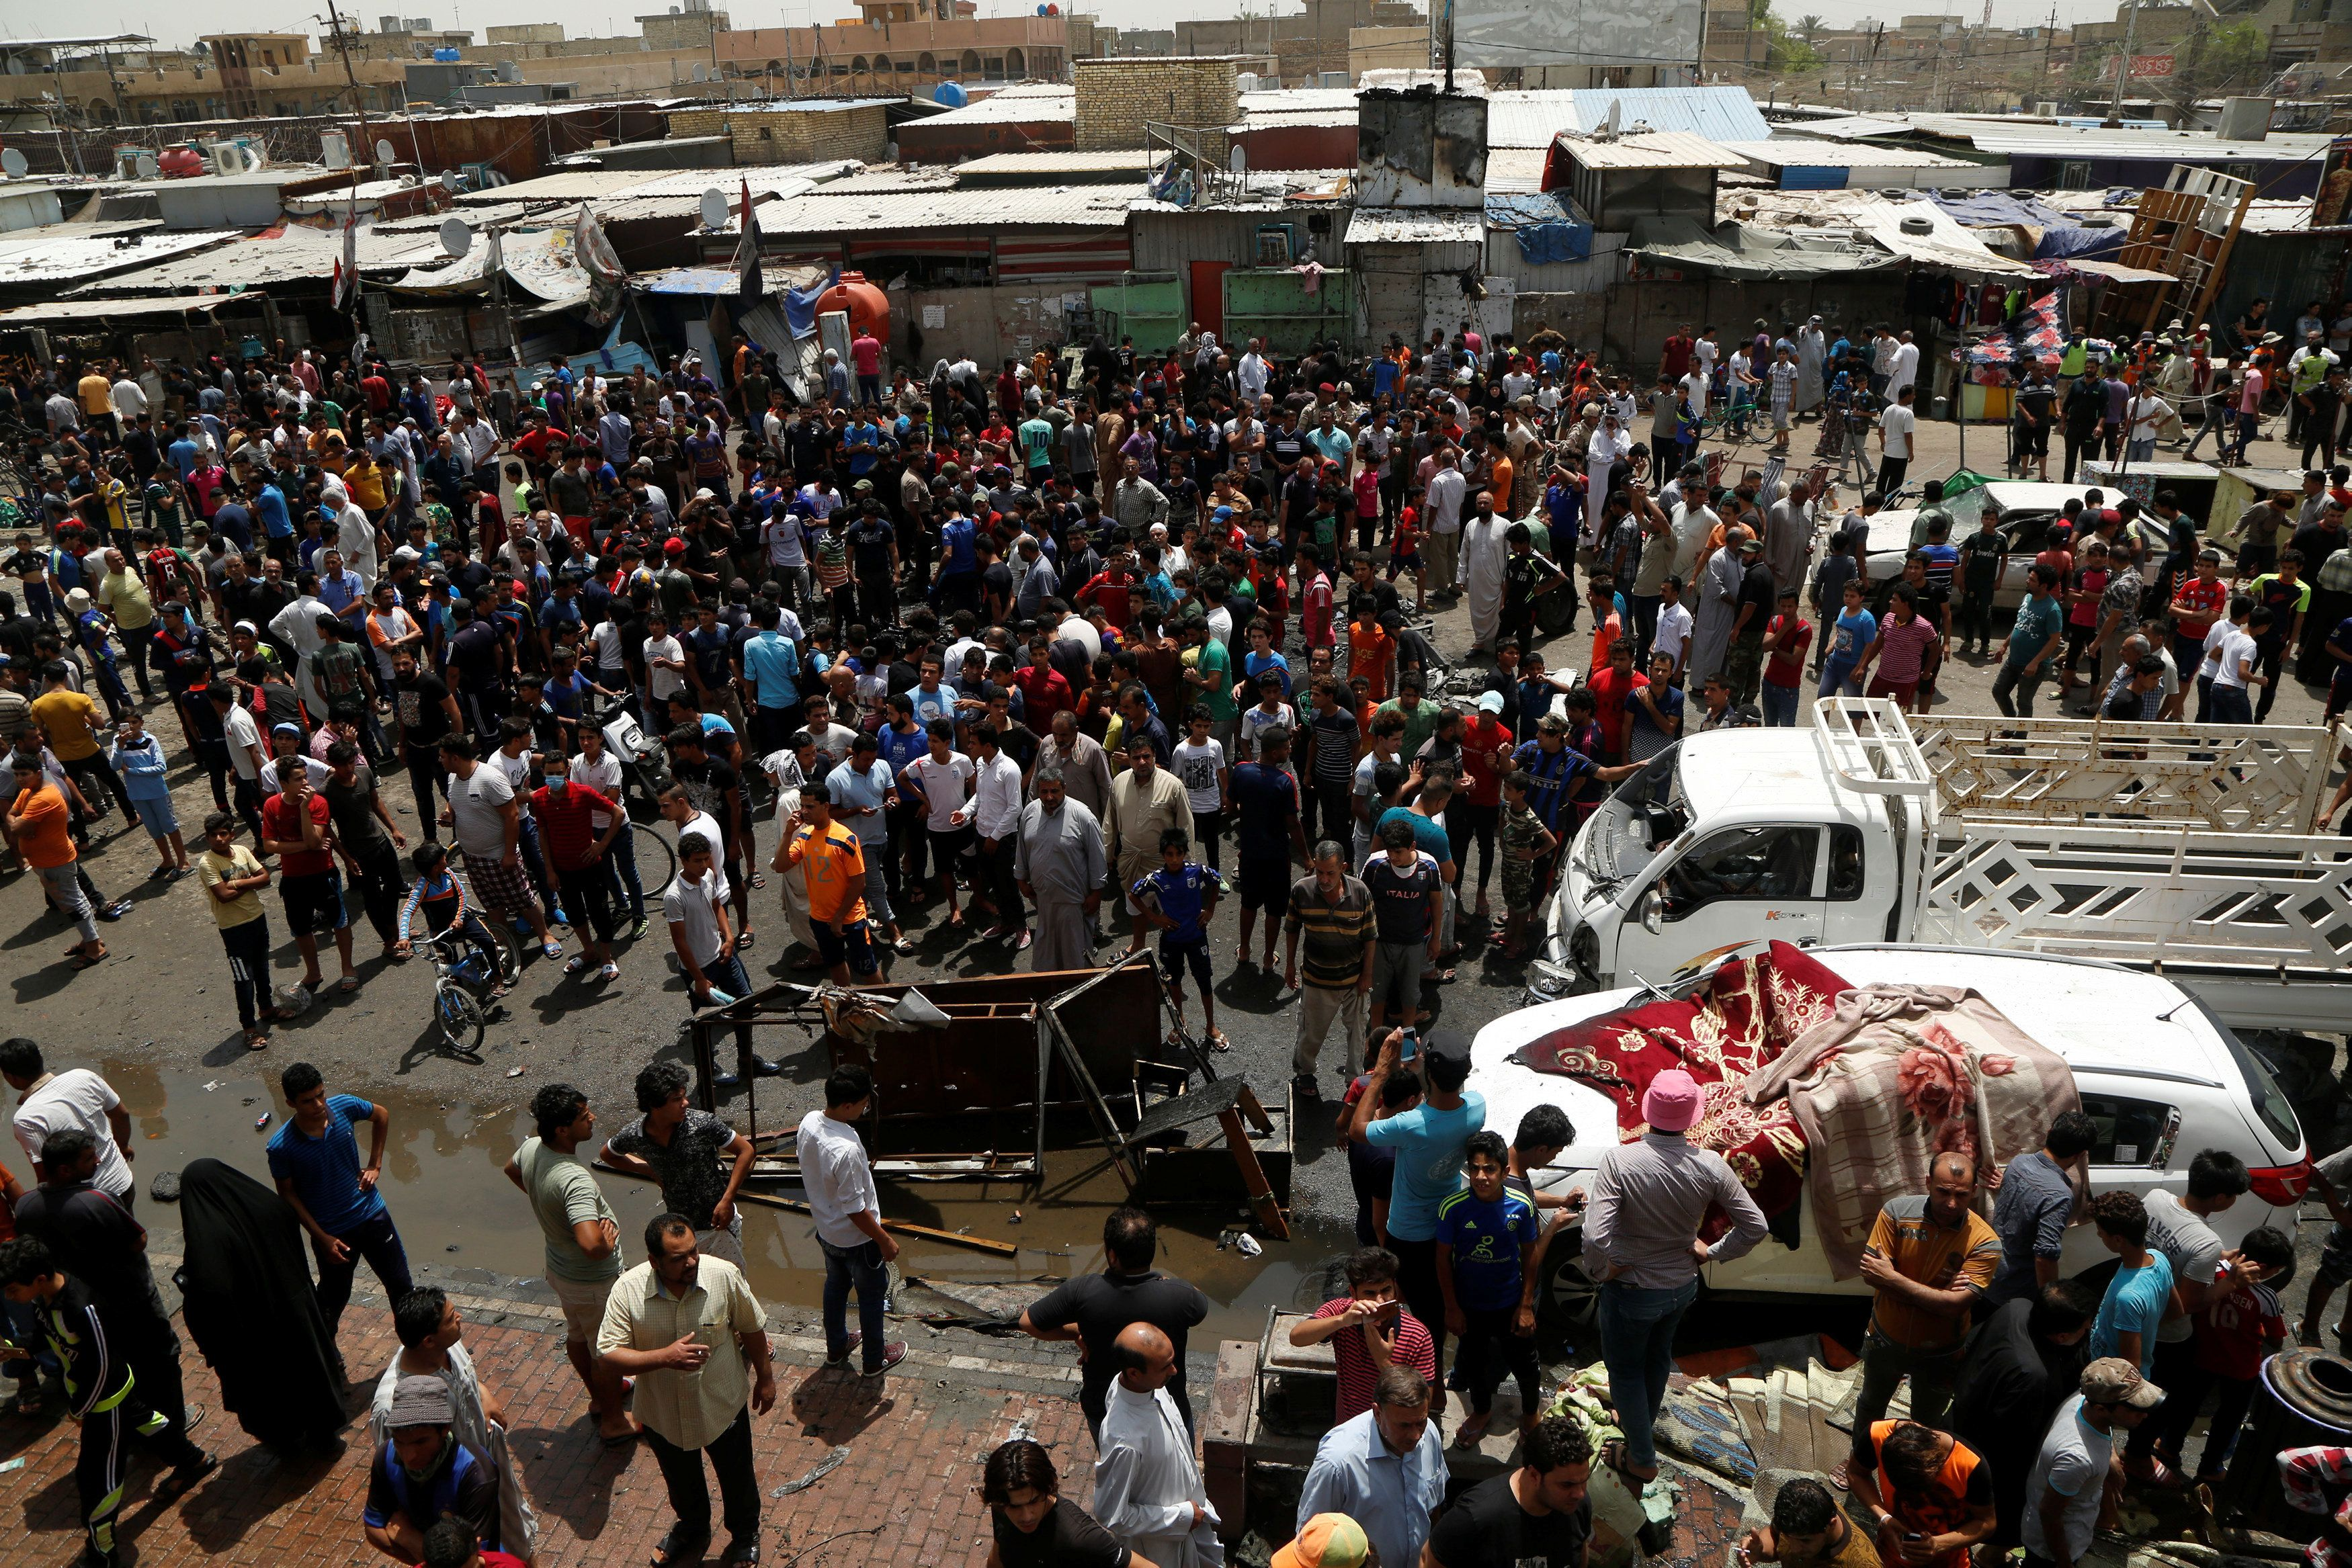 People gather at the scene of a car bomb attack in Baghdad's mainly Shi'ite district of Sadr City,